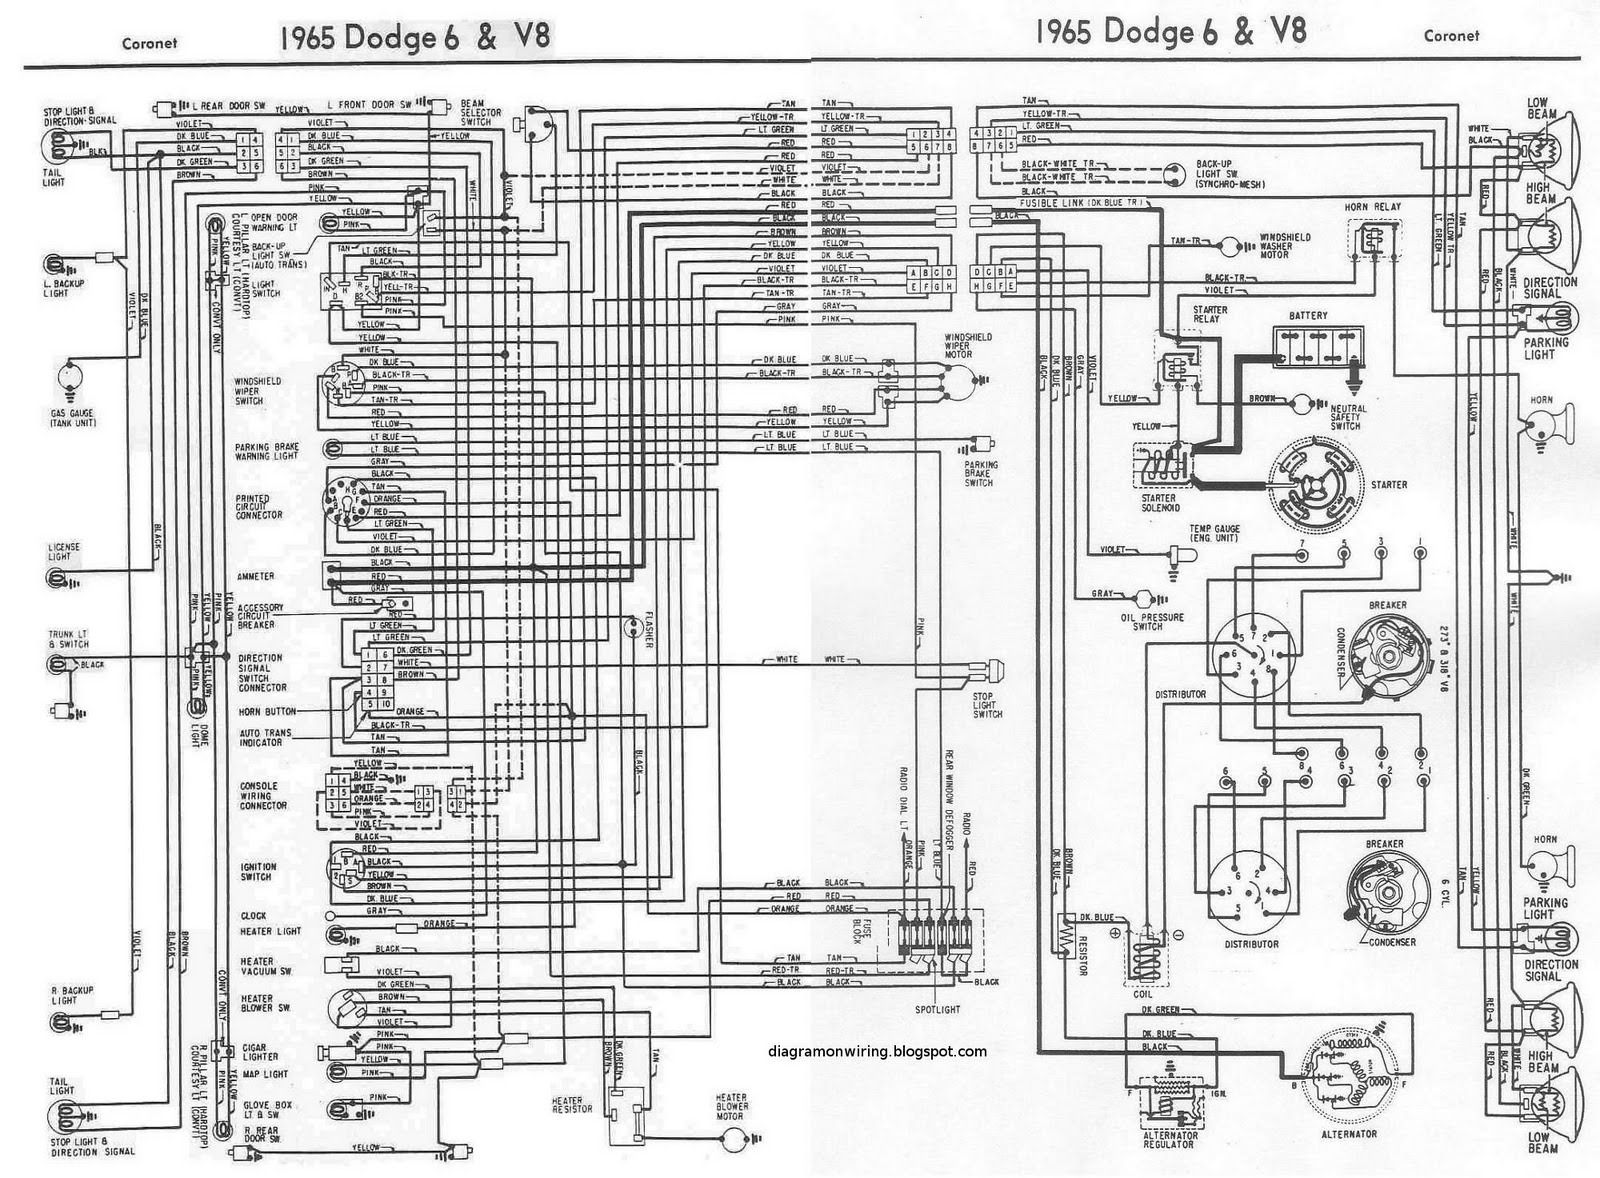 medium resolution of wiring diagram for 1966 dodge coronet wiring diagram article review 1965 dodge coronet wiring diagram source 1968 coronet engine